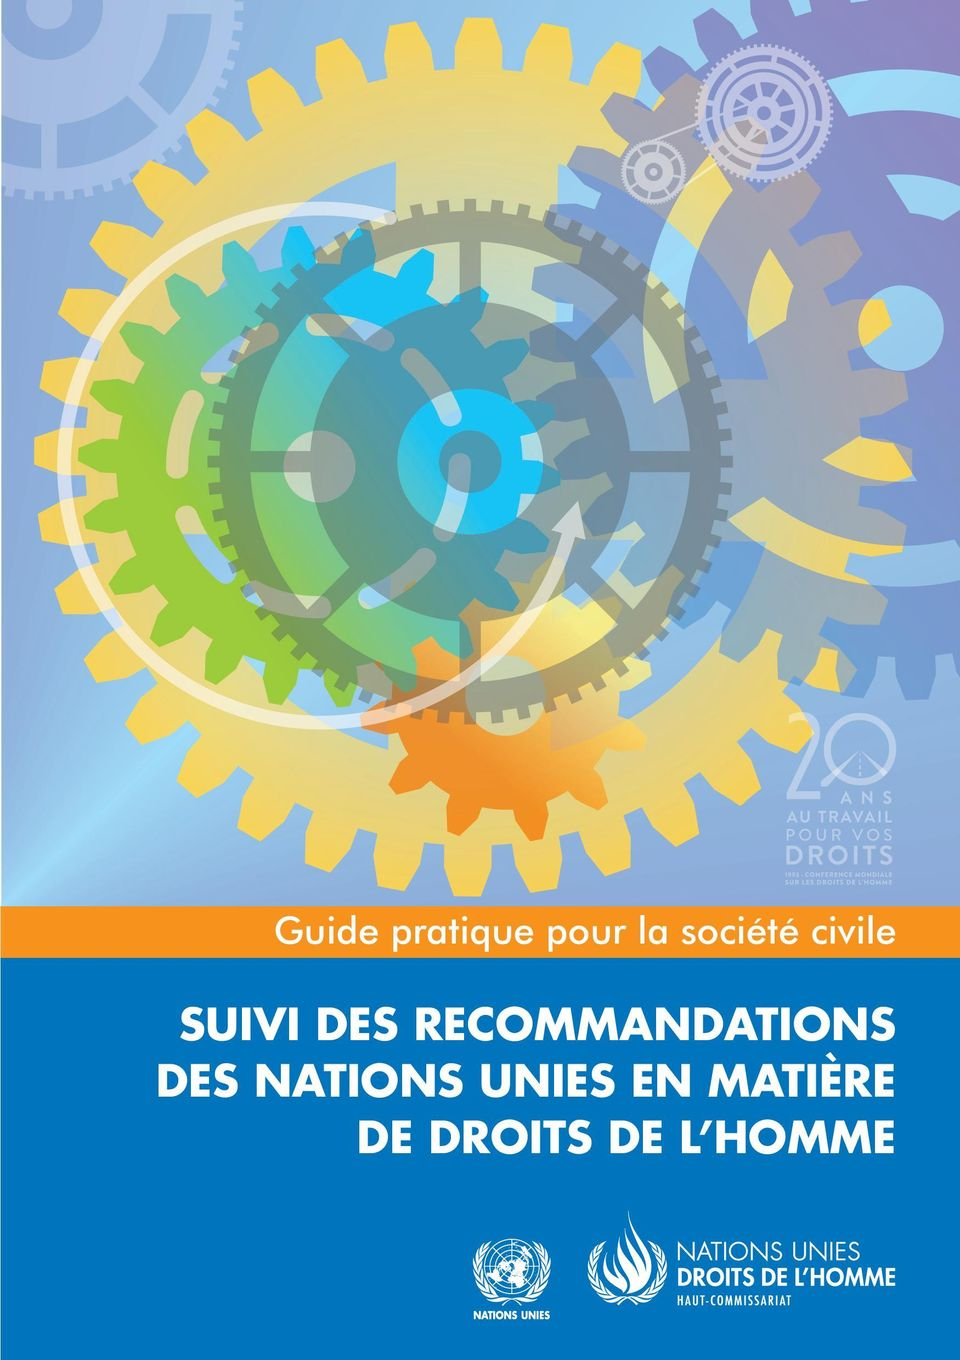 RECOMMANDATIONS DES NATIONS